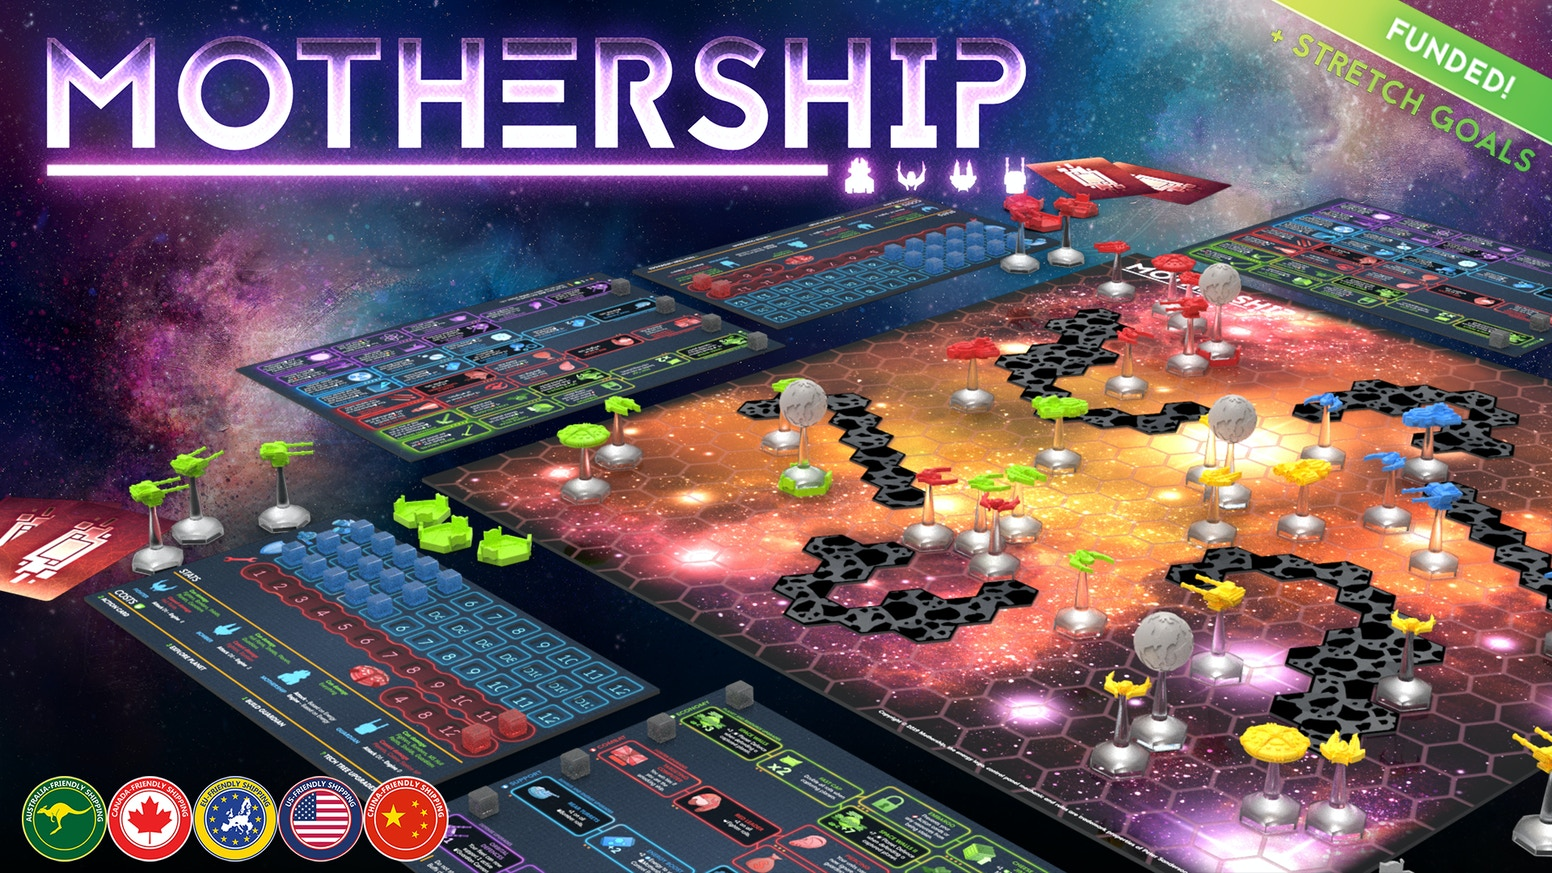 Command a fleet, explore planets and rule the galaxy in this light sci-fi strategy game for 2 - 6 players.